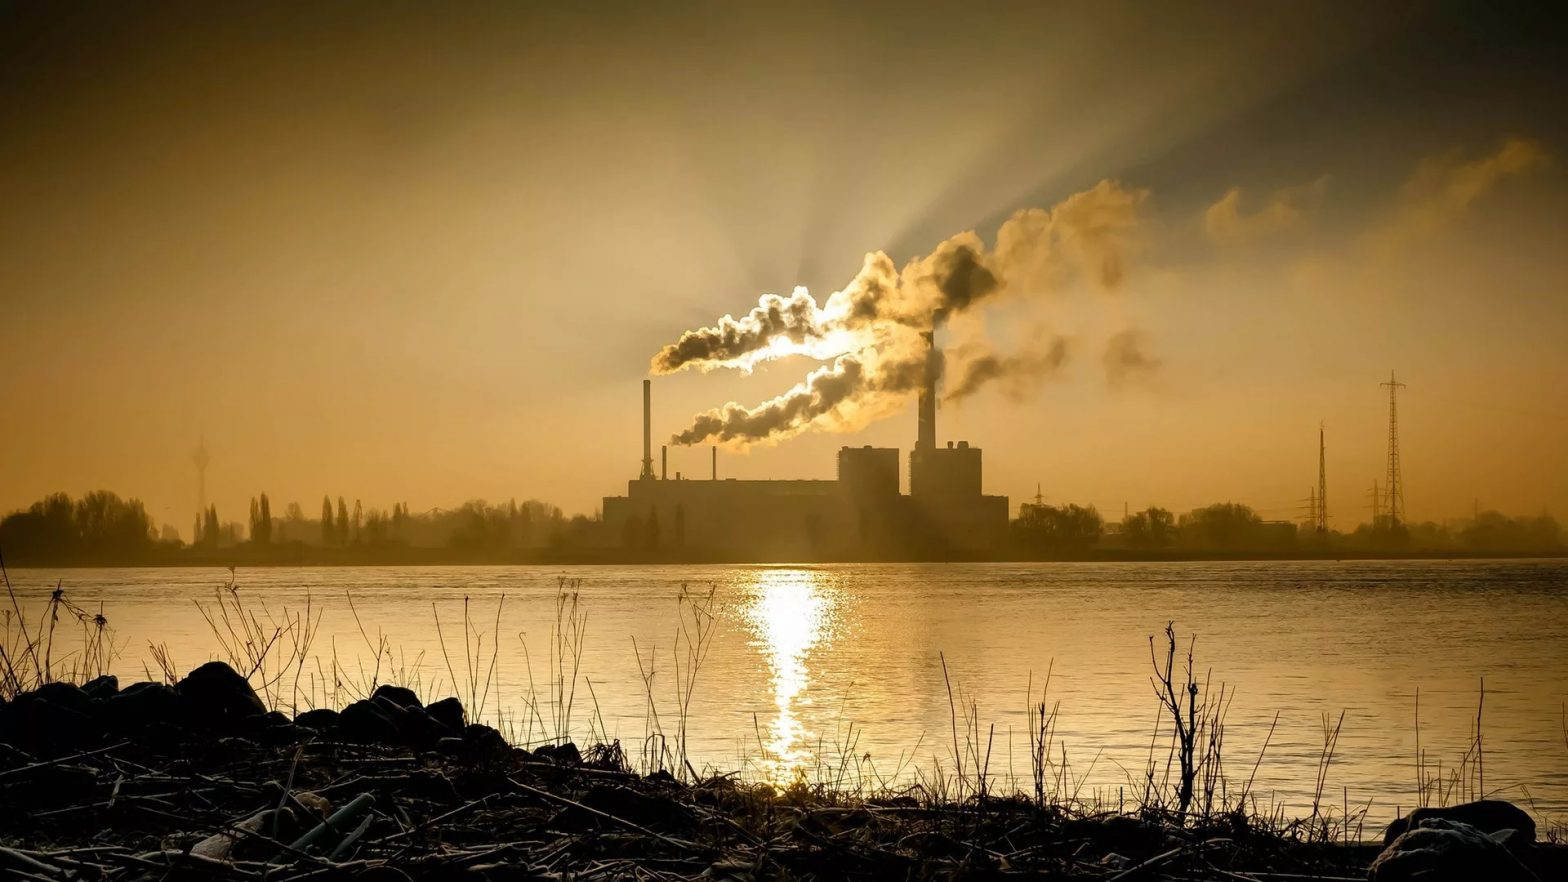 Human activities and their impact on the environment